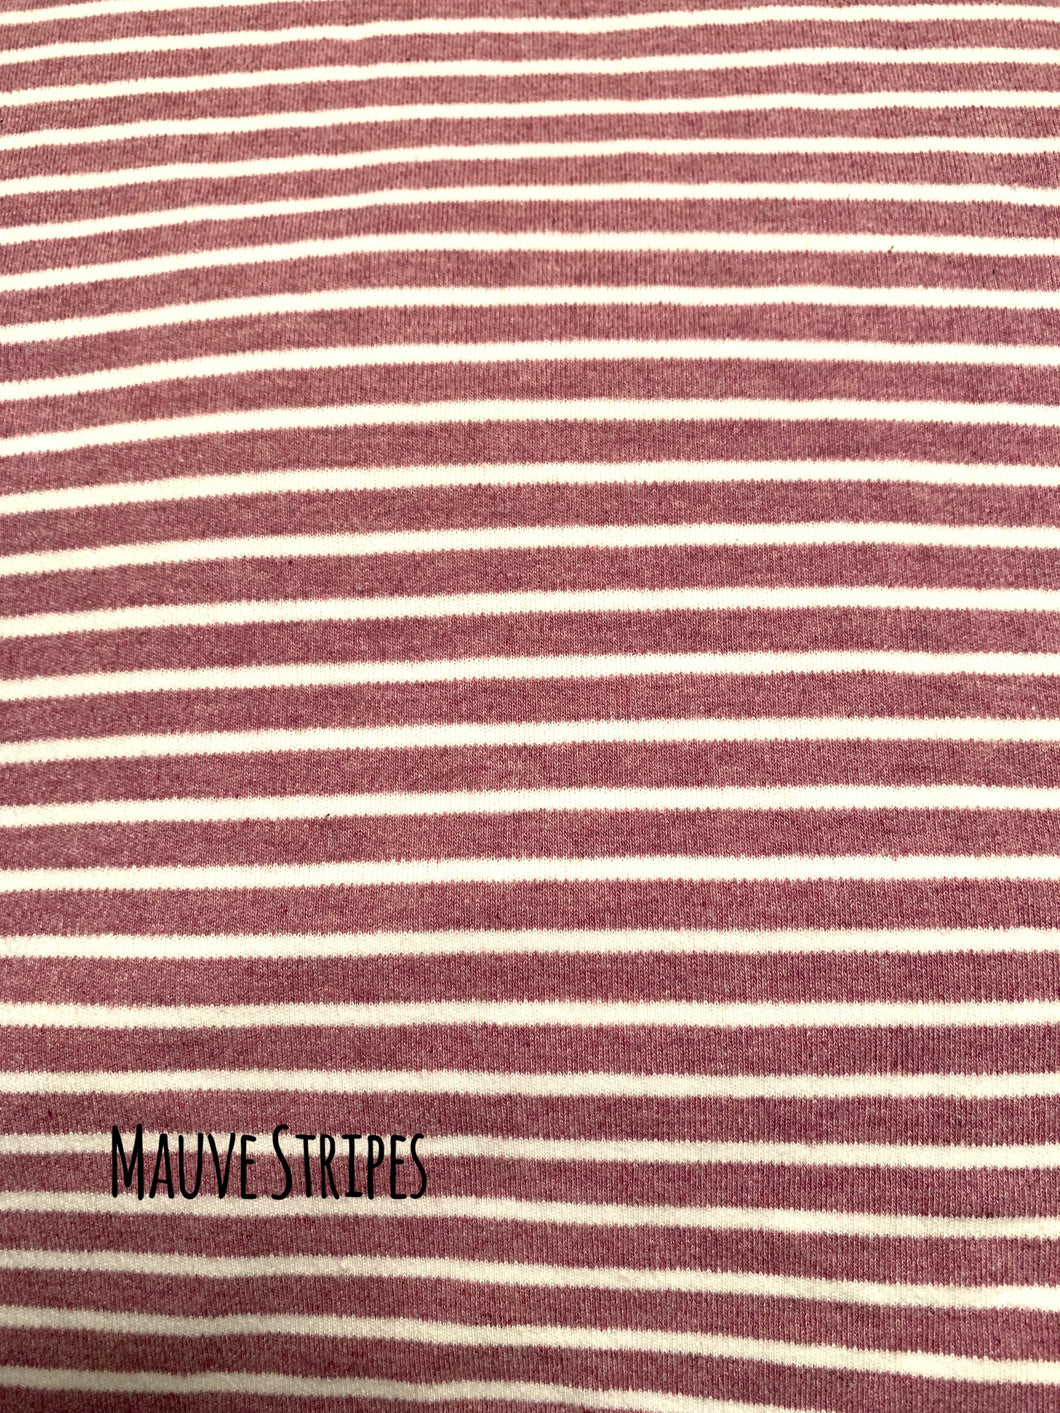 Mauve Stripes